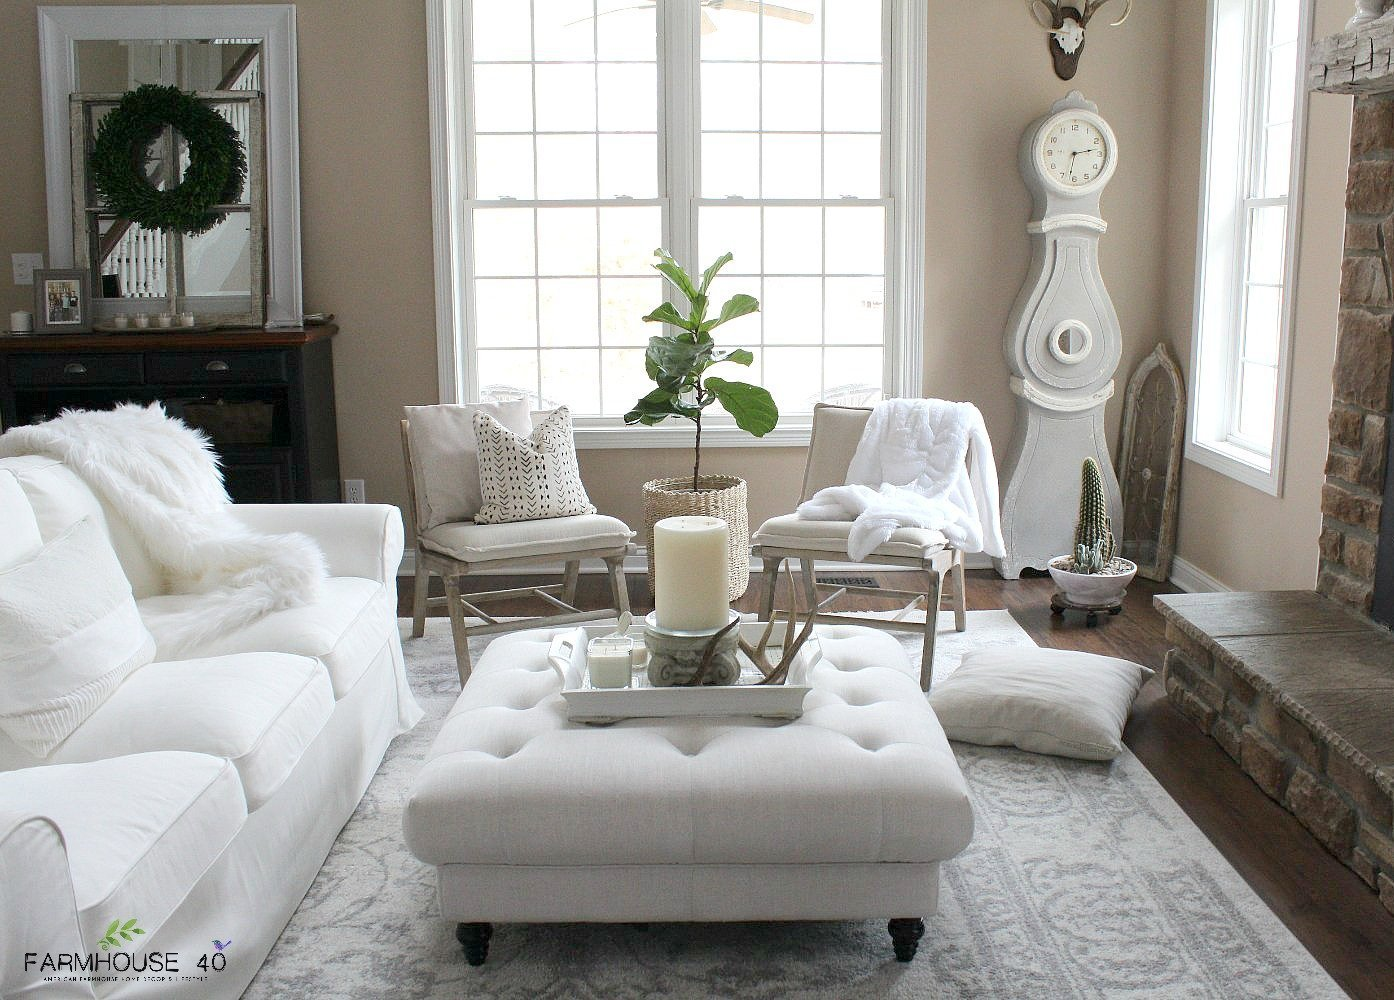 Easy Winter Decor With A Minimalist Twist Farmhouse 40